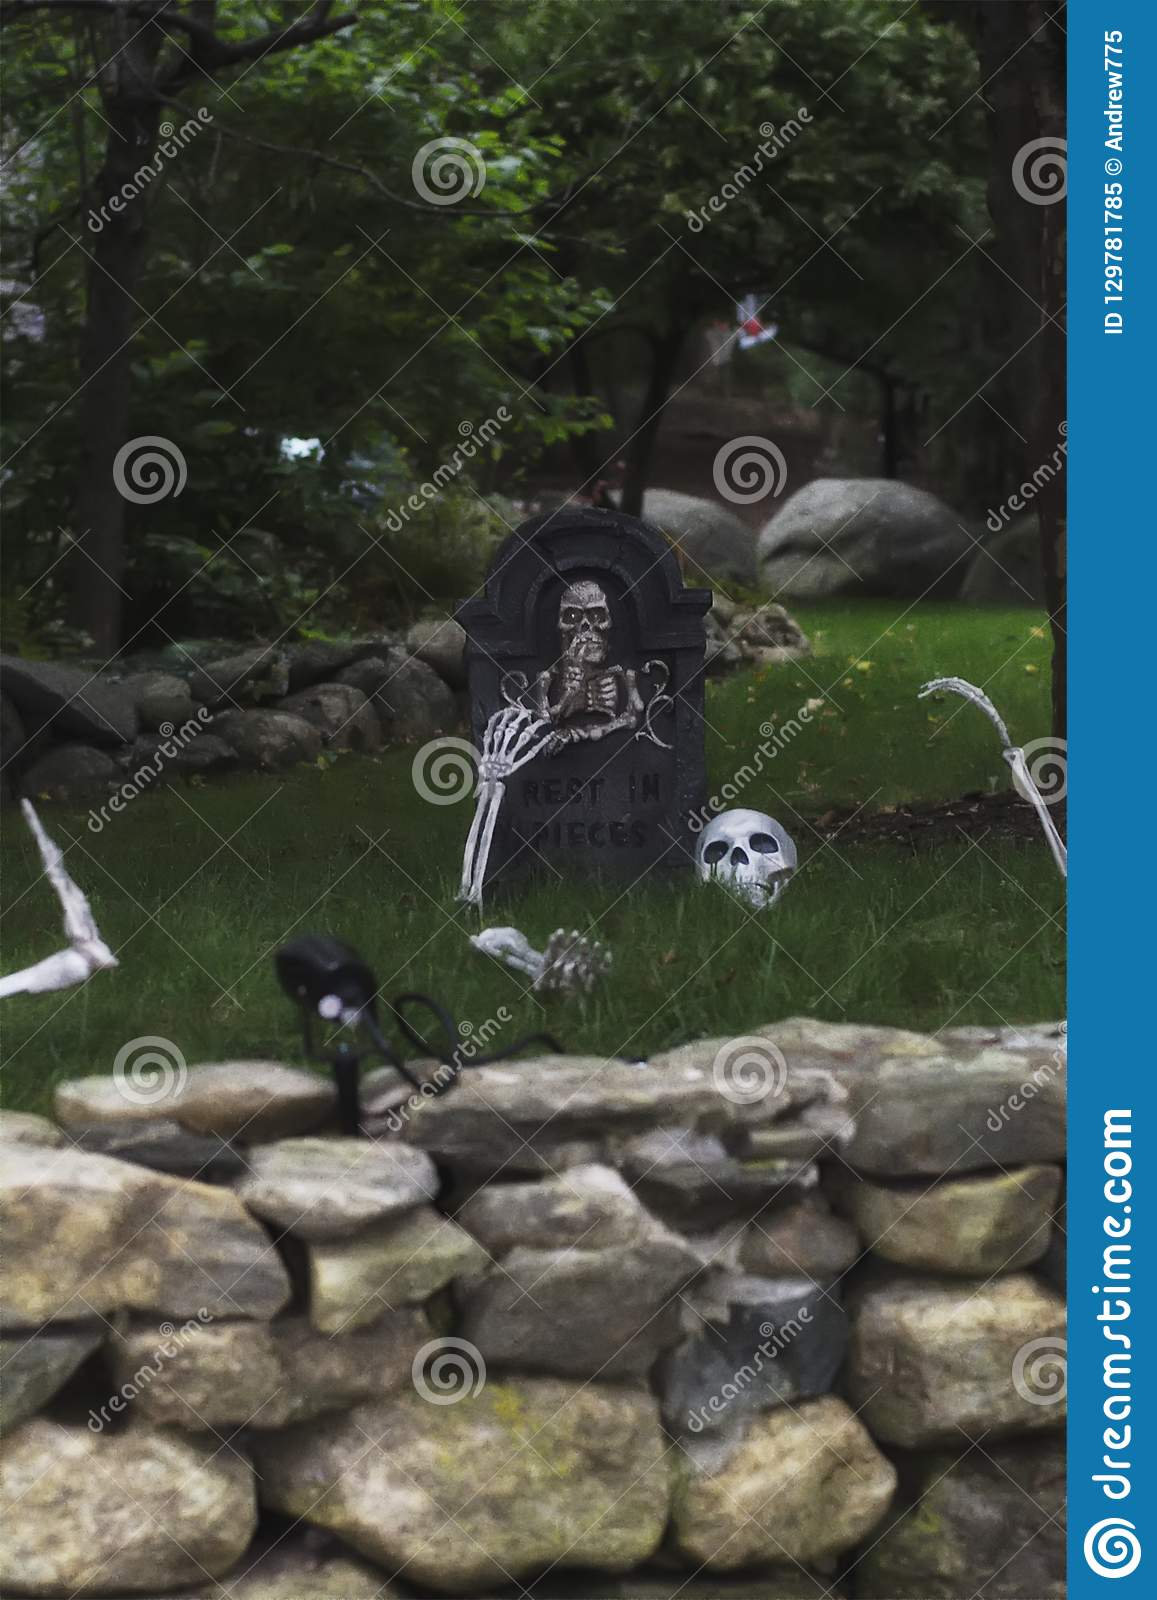 Halloween Front Yard Decorations Stock Image Image of lawn